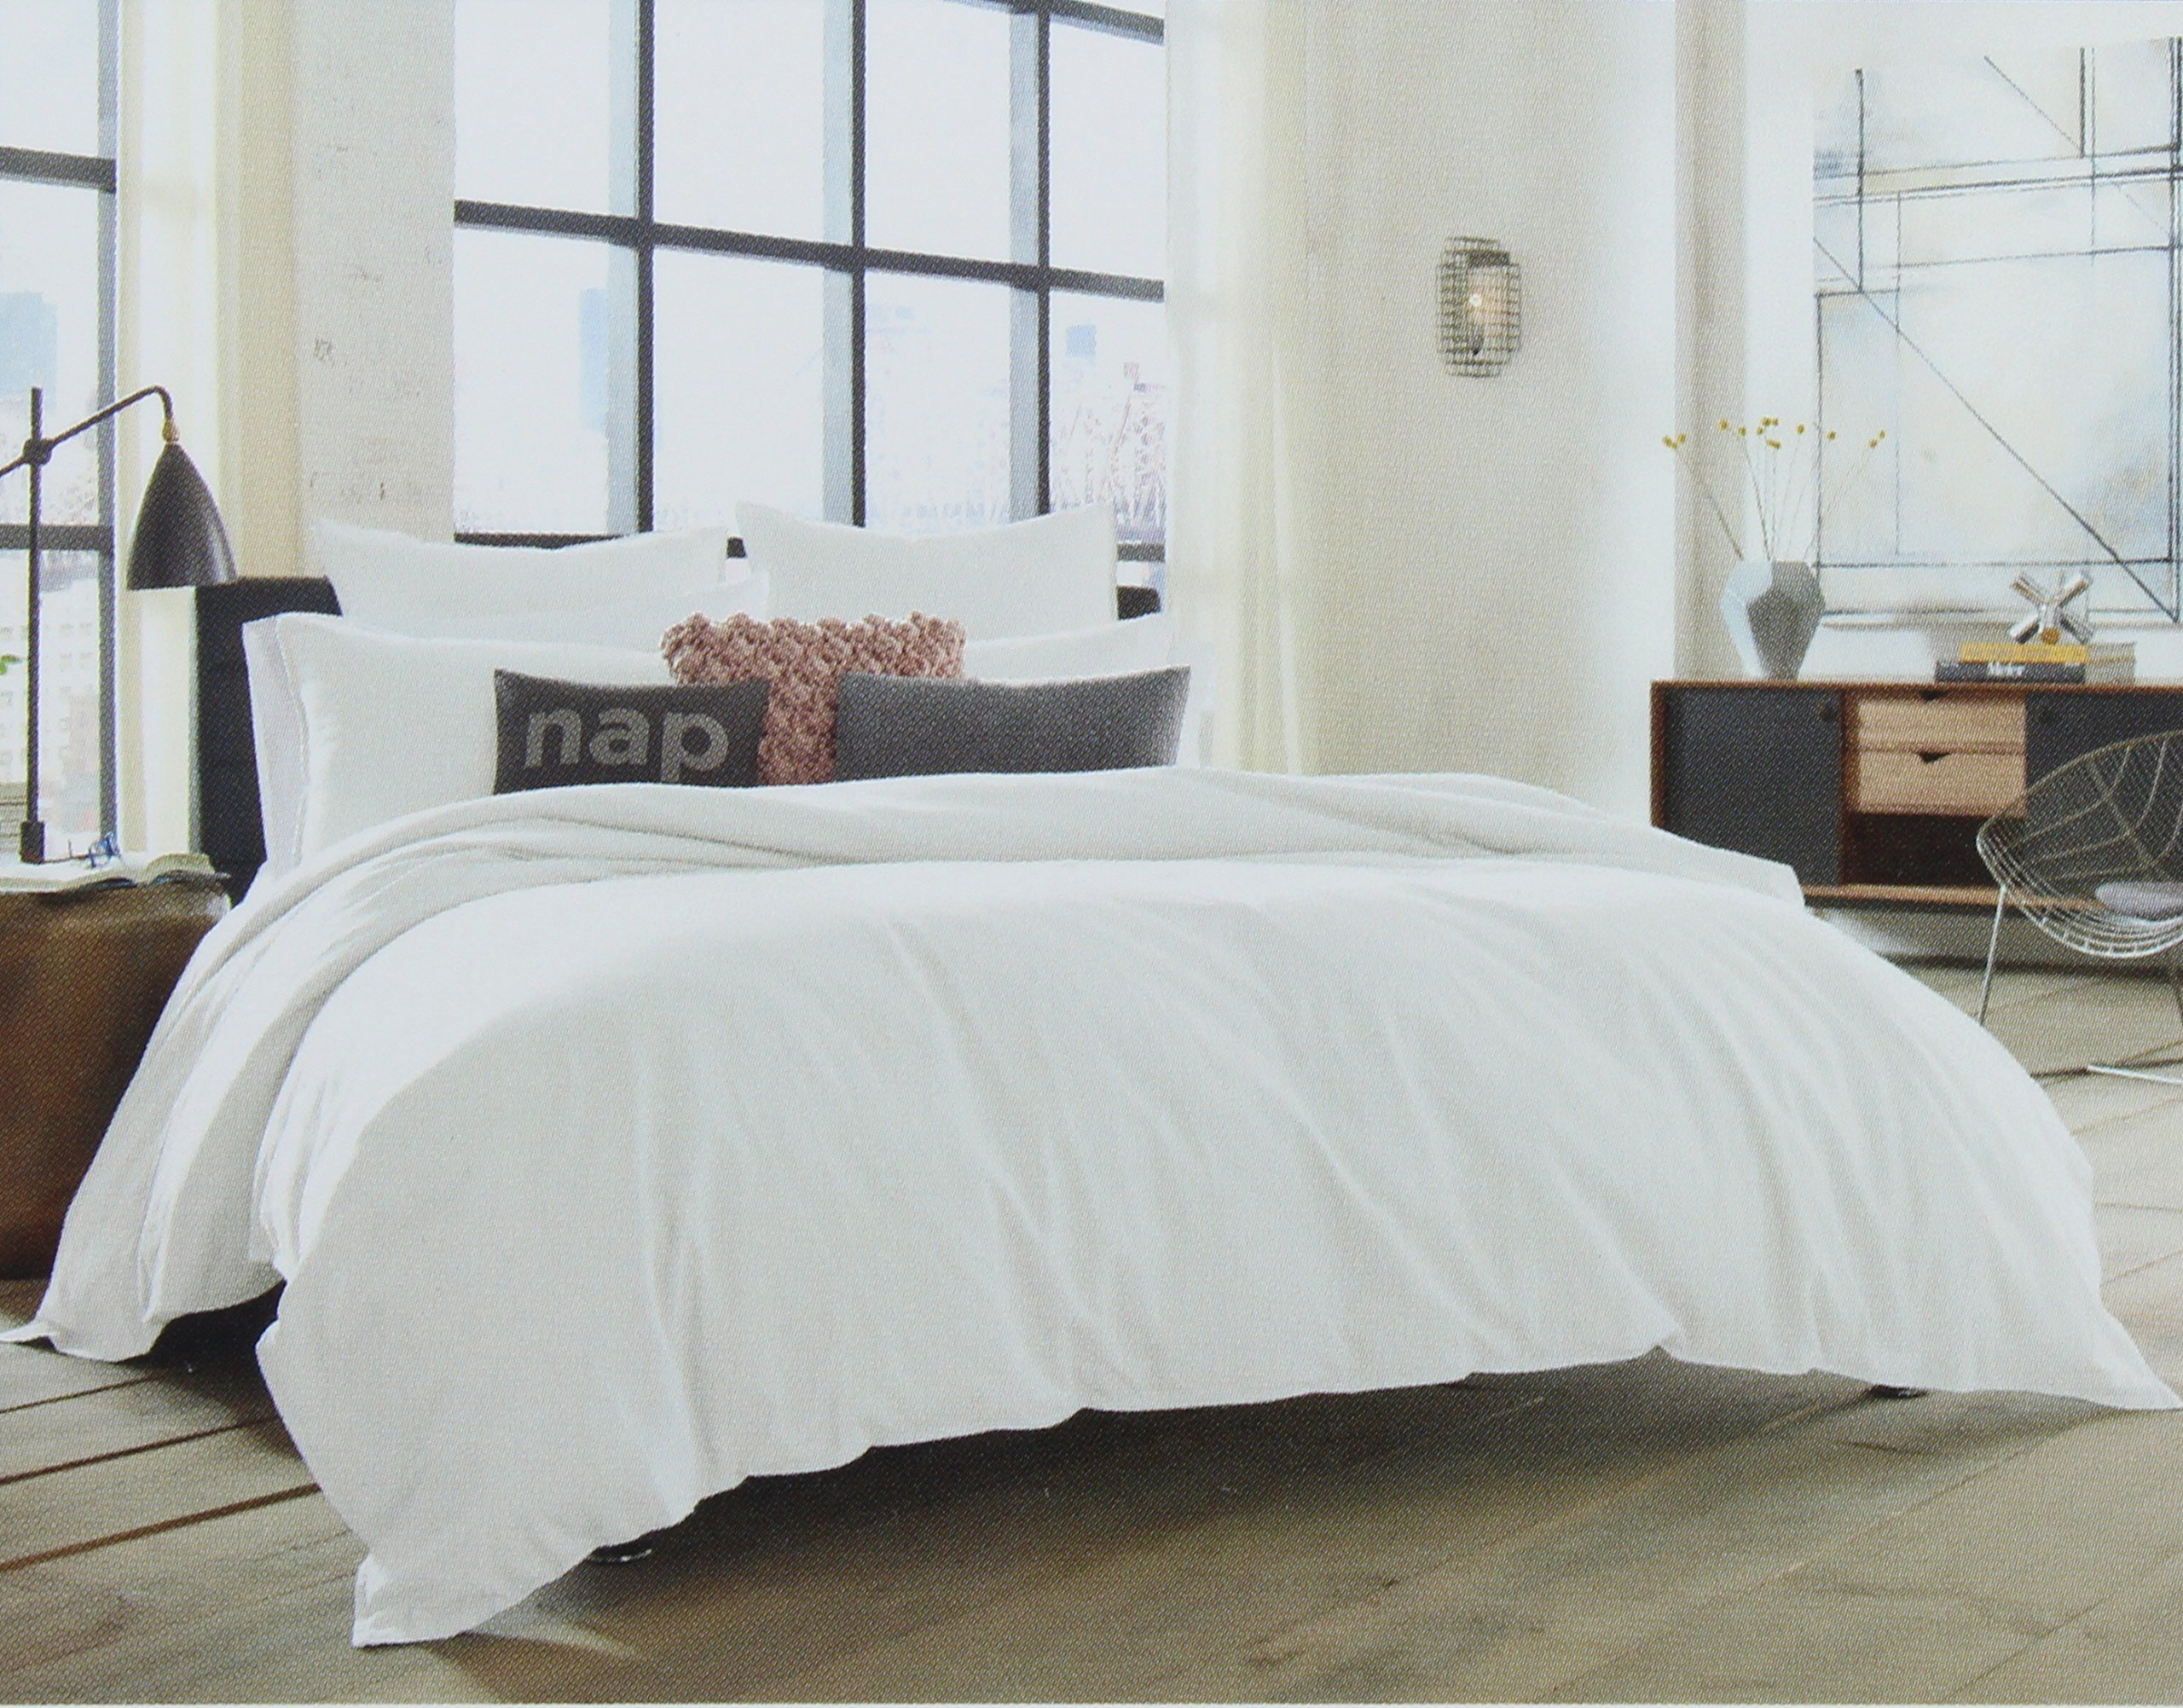 Kenneth Cole Reaction Home Full Queen Size Duvet Cover from the Mineral Bedding Collection in a White Color RN 100350